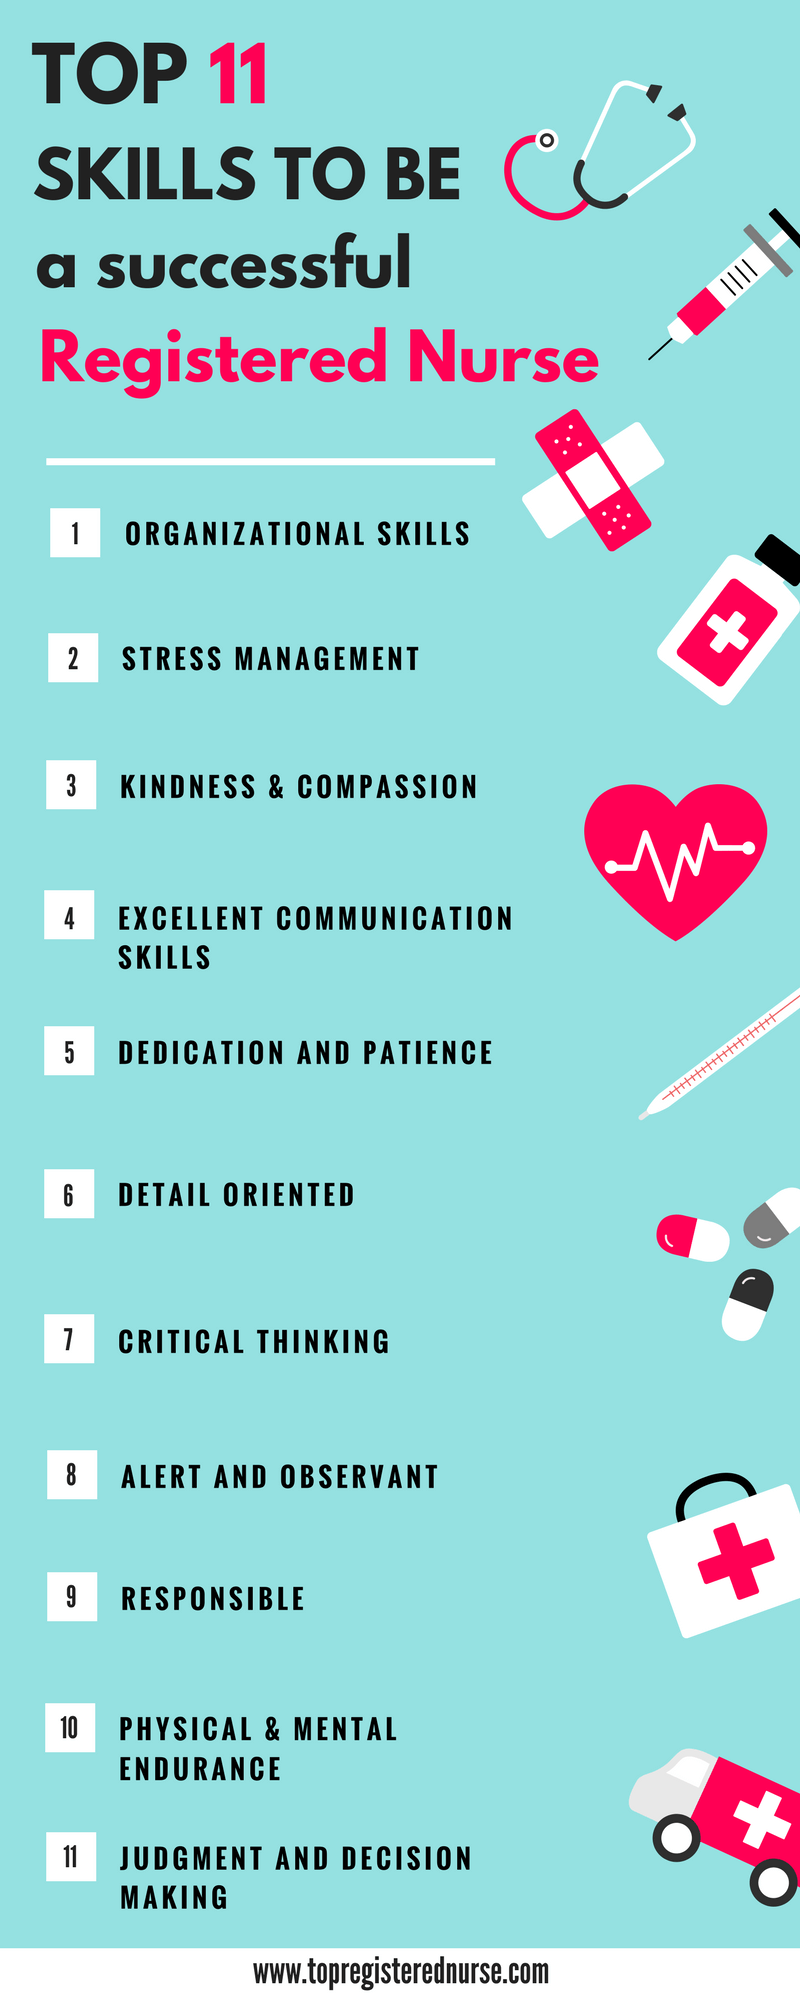 Top 11 Skills For Becoming A Successful Registered Nurse